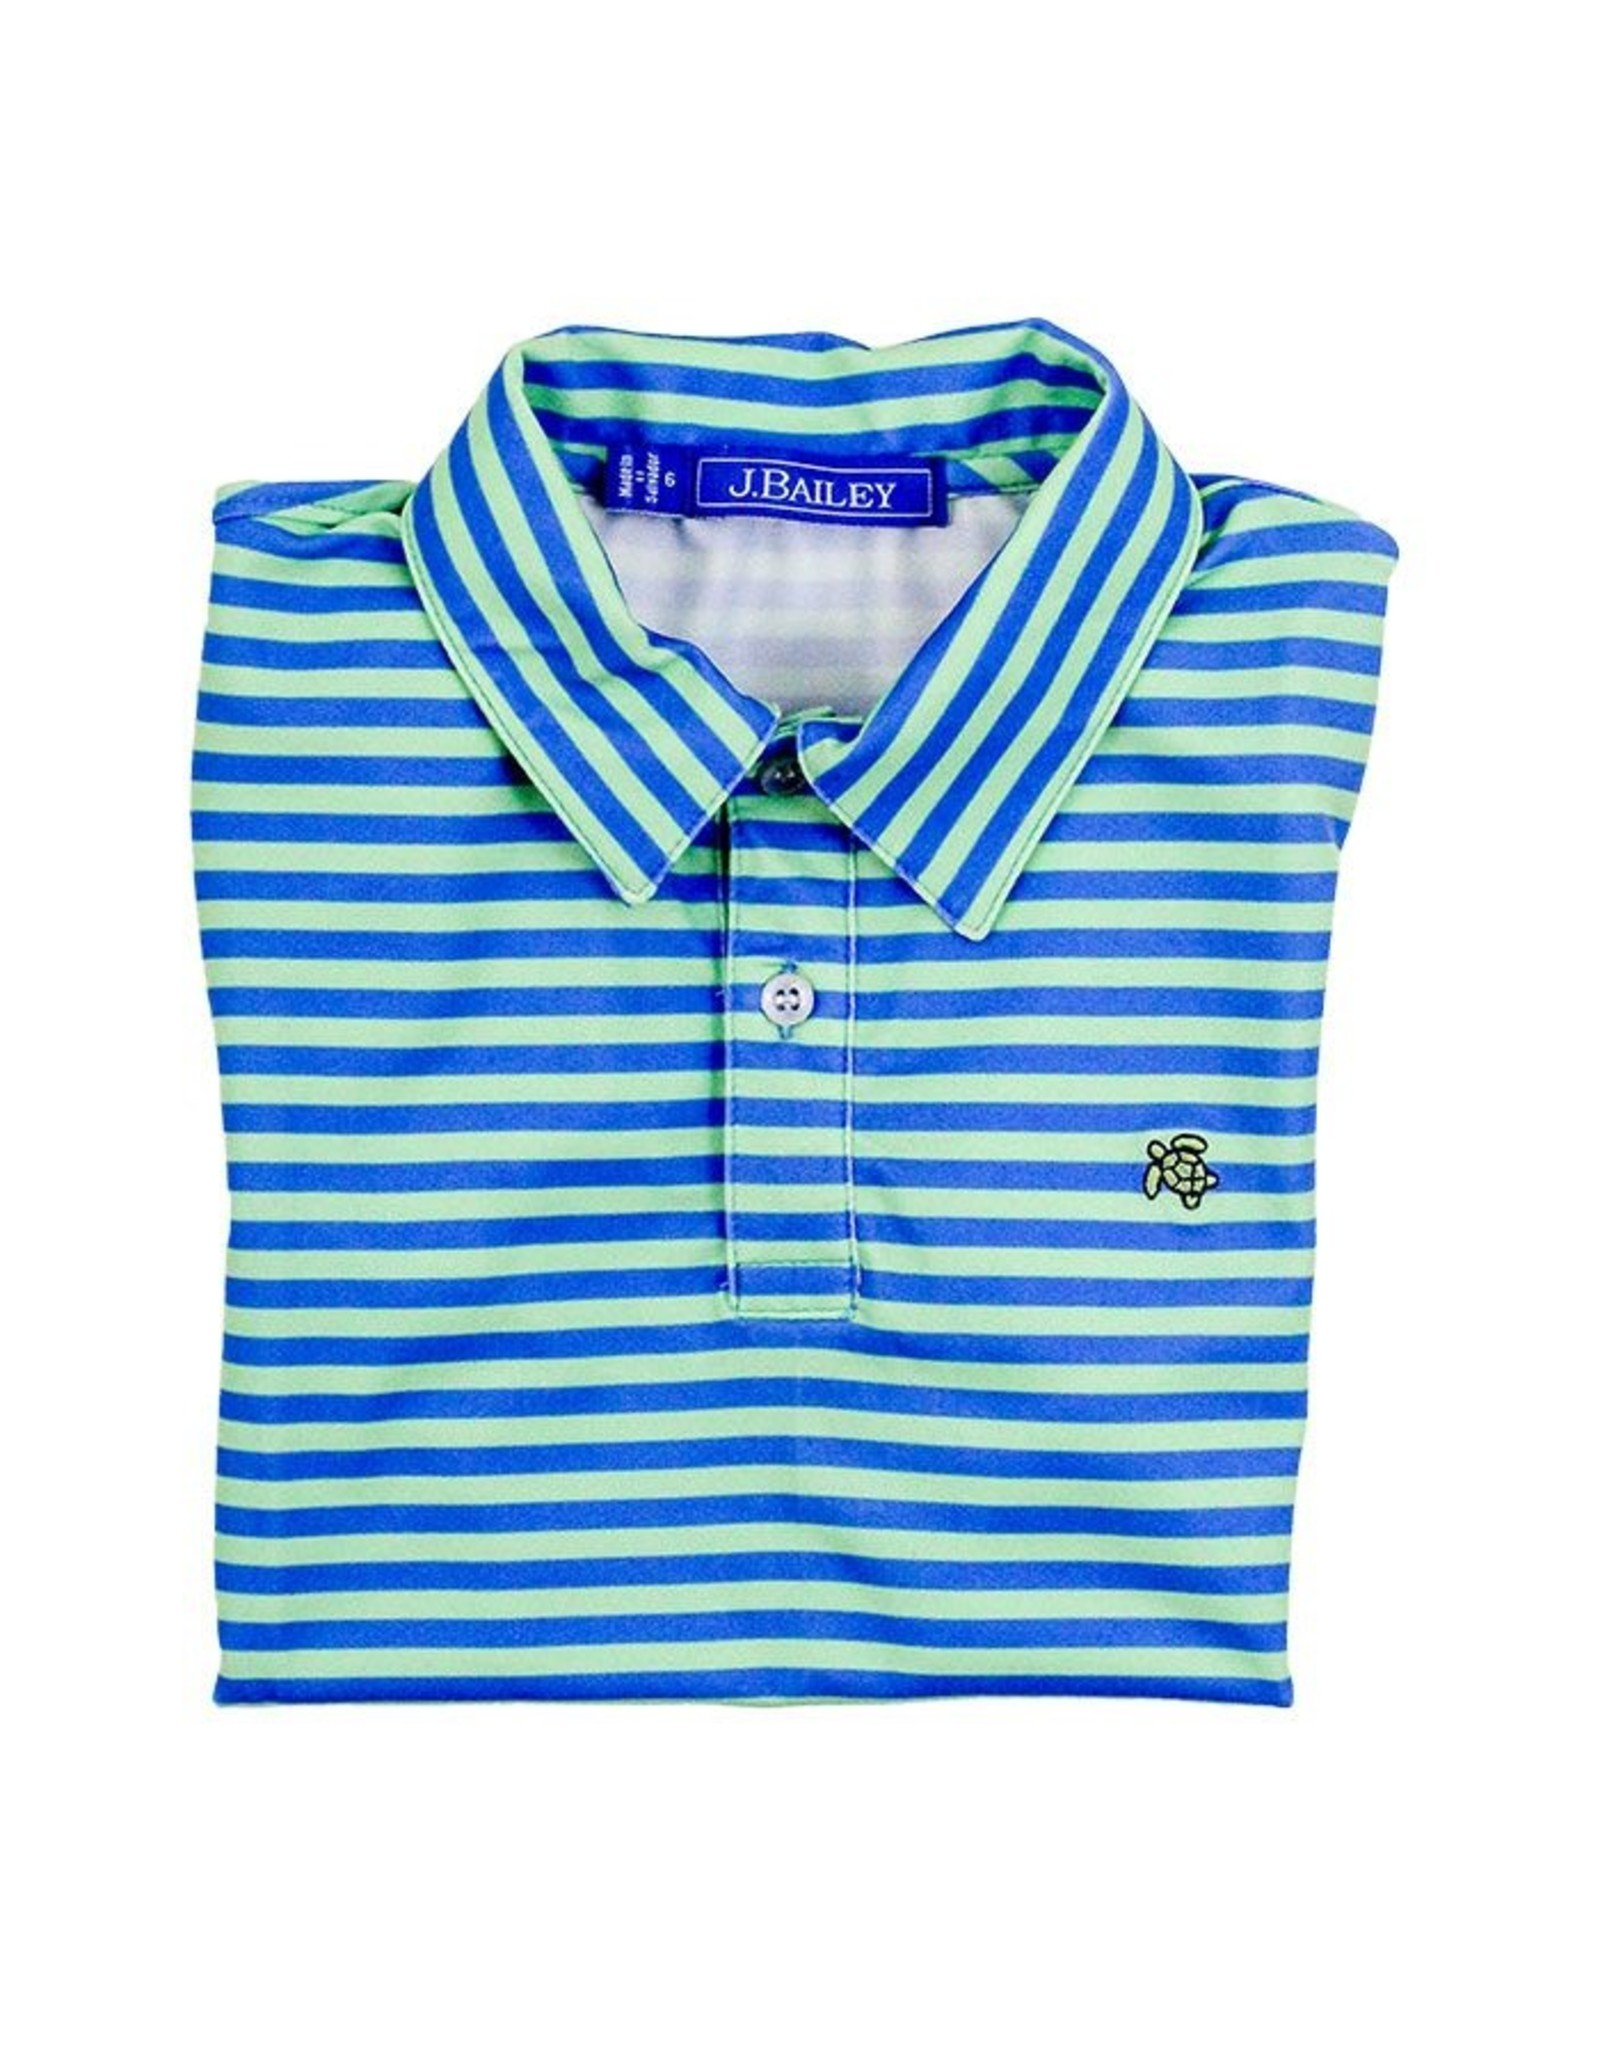 J Bailey Blue/Green Performance Polo